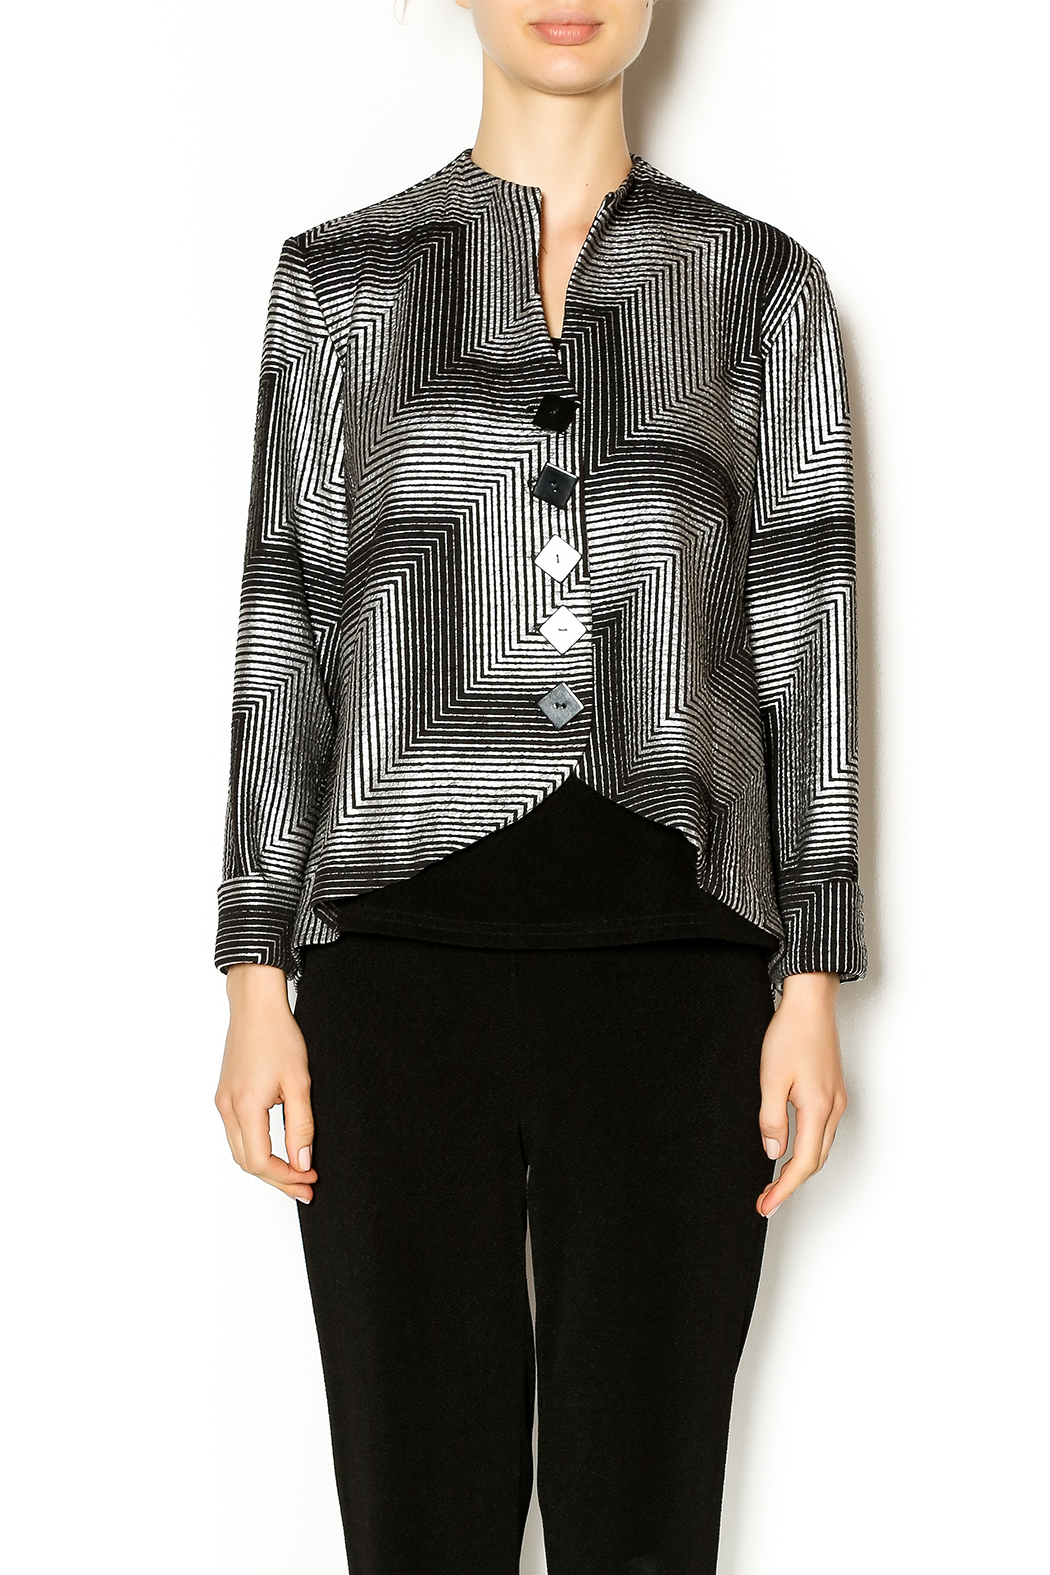 Yushi Black Silver Jacket From Worcester By French Twist